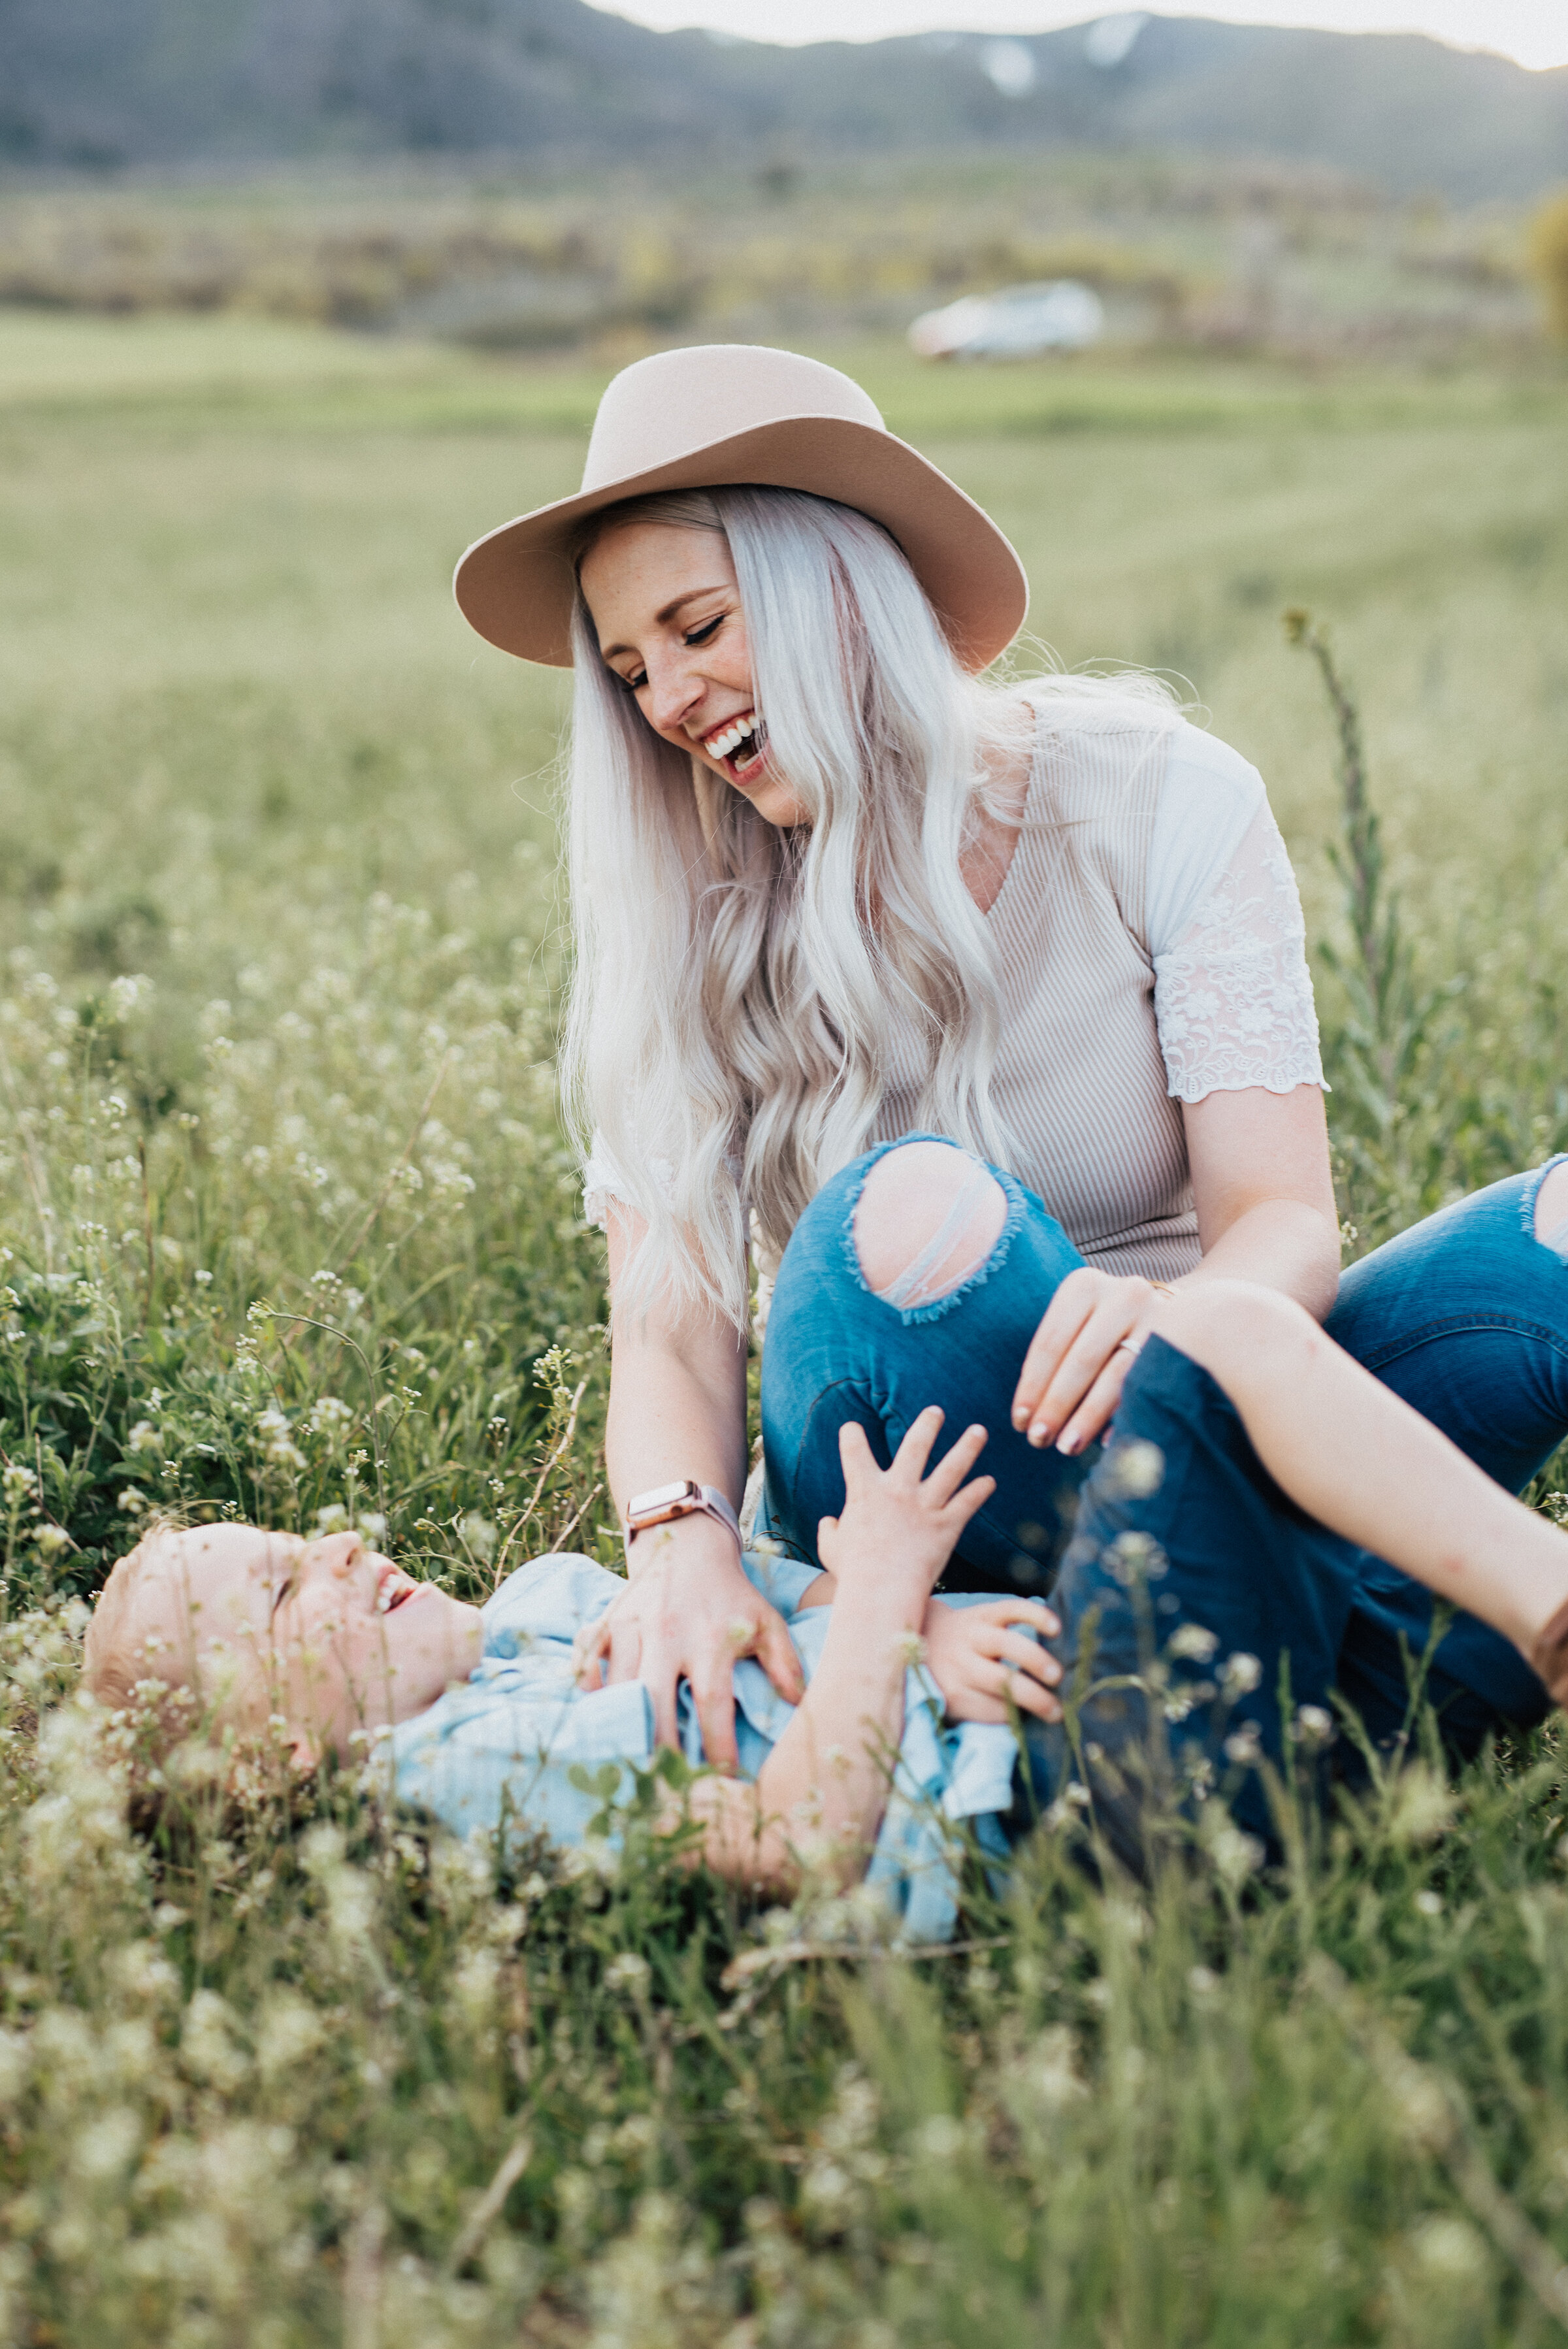 Mom laughs with son in the grass during a beautiful logan utah photography session with Kristi Alyse Photography. Mom of boys photo inspiration laughing photo ideas candid photography family portraits logan utah photographer laughter in photography #livelaugh #kristialysephotography #kristialyse #photography #photos #laughingportraits #momofboys #thatsmyboy #adventurephotoshoot